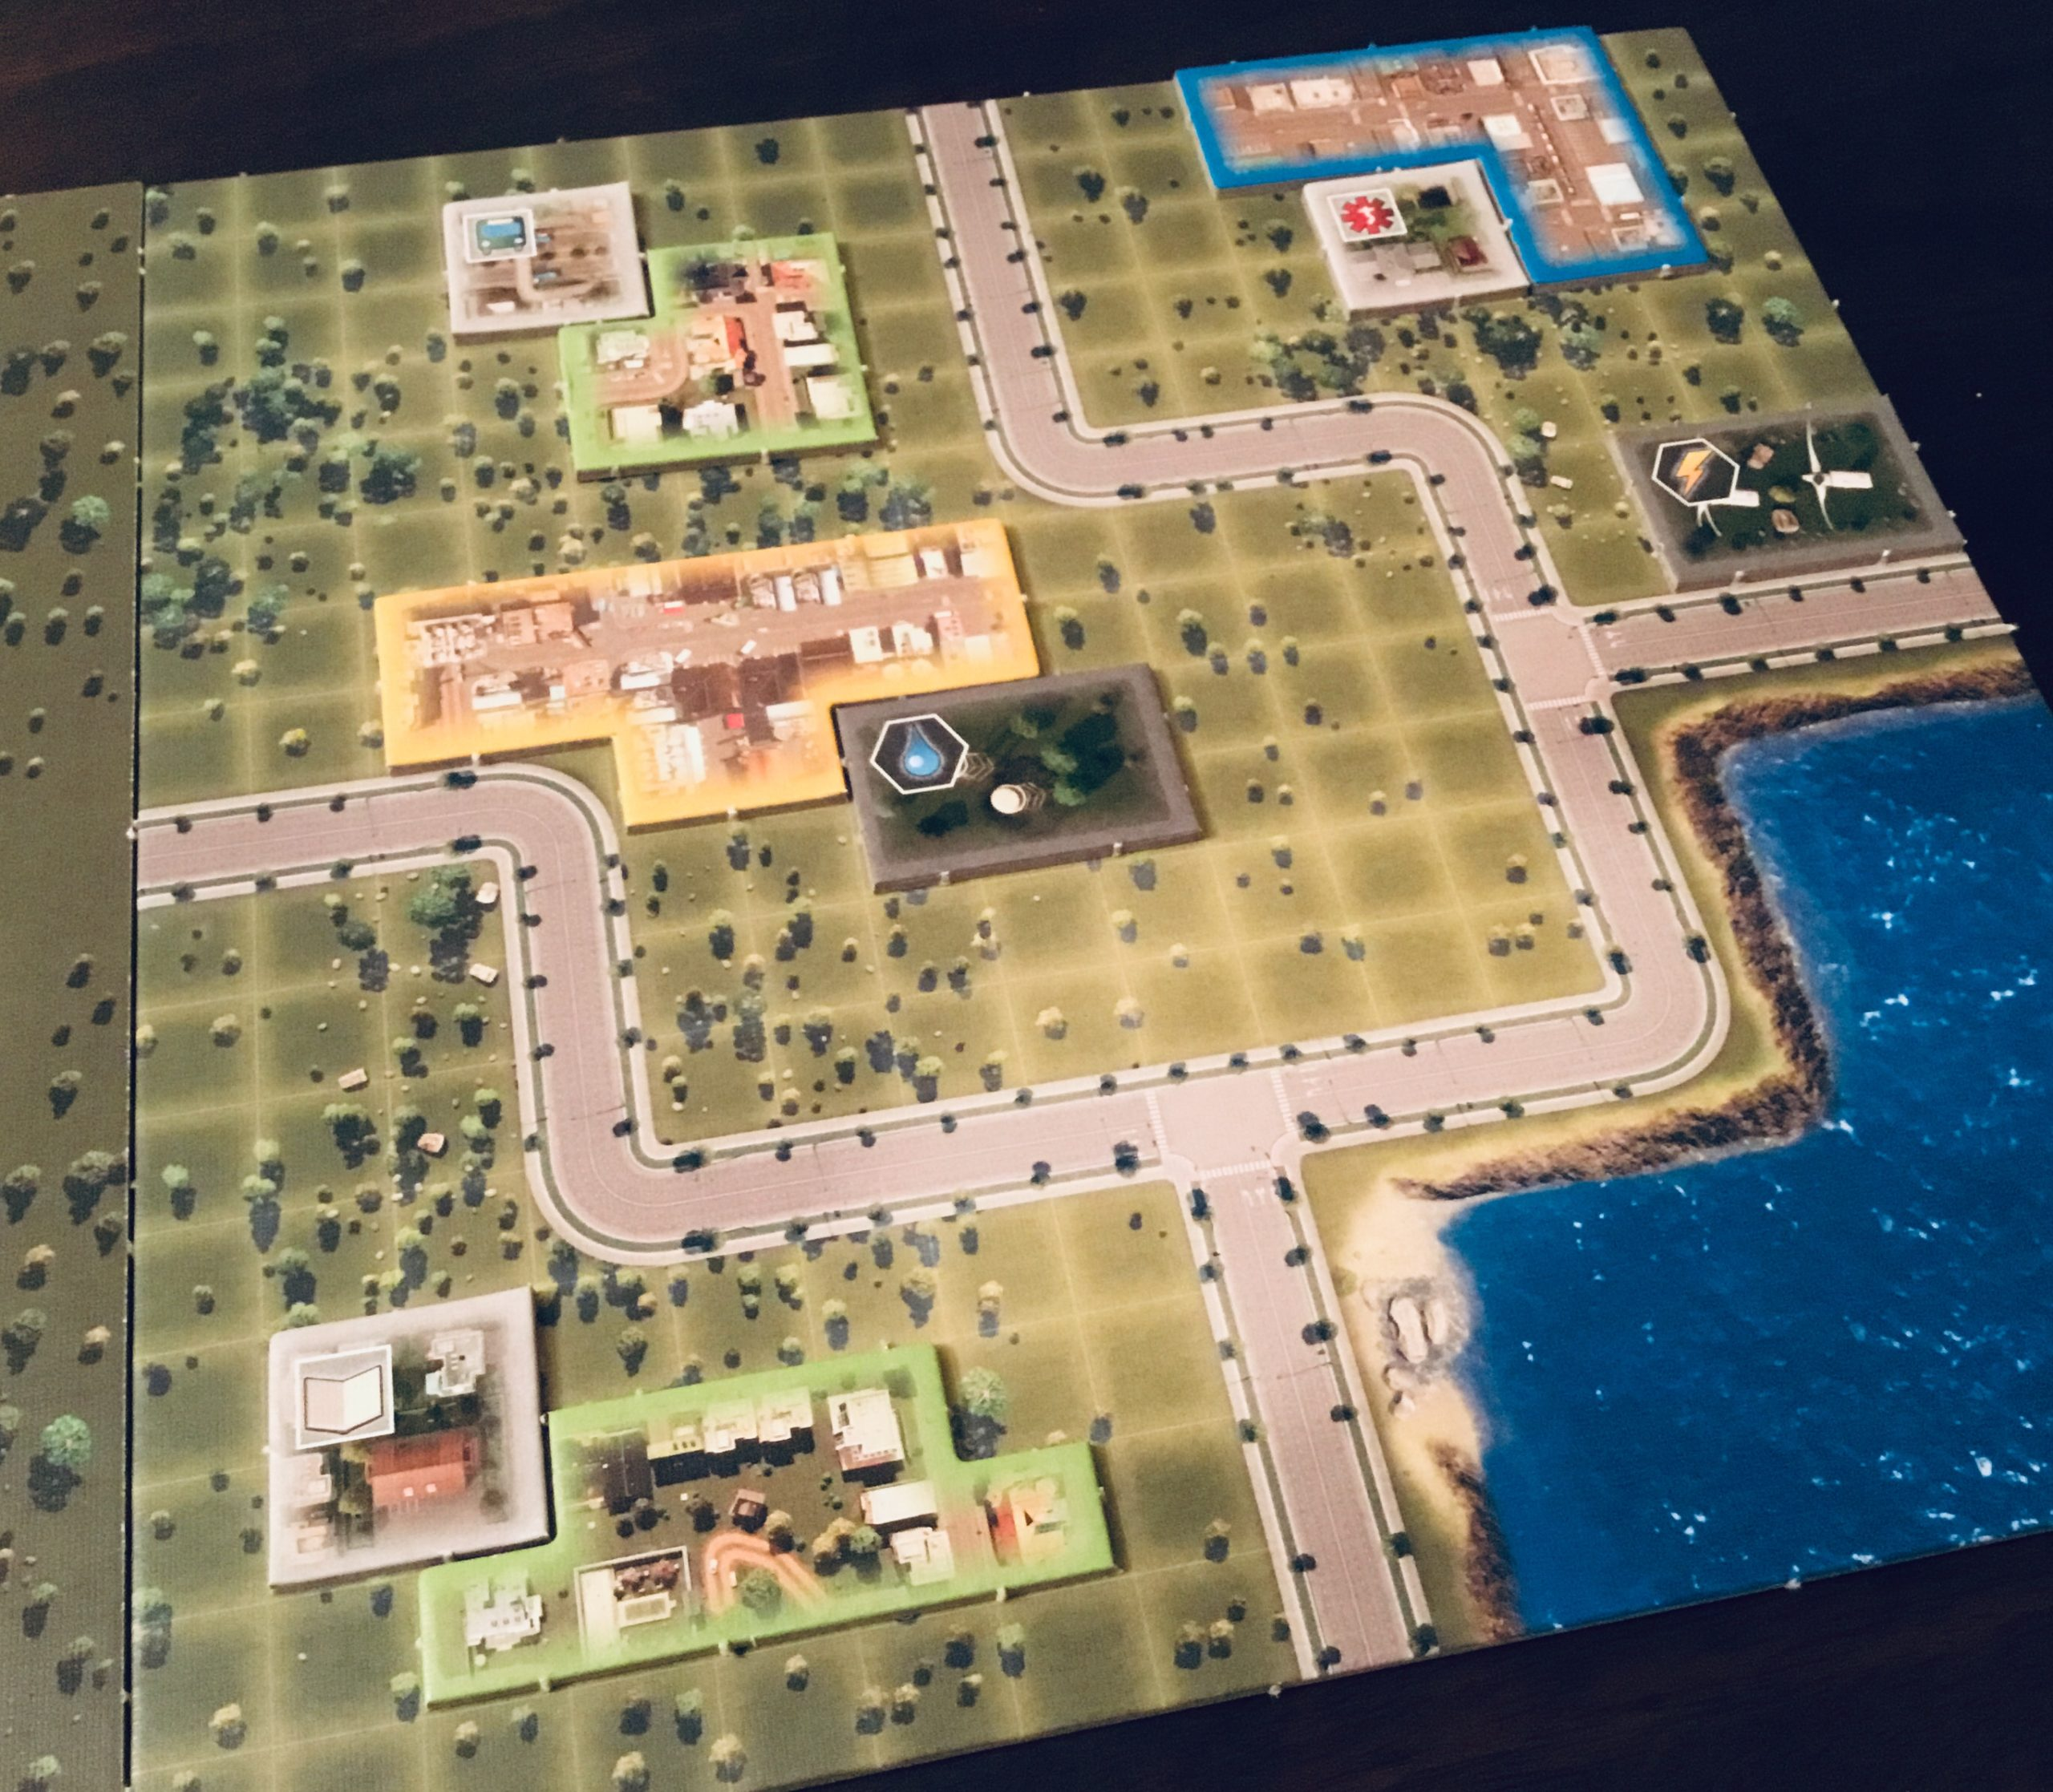 Review Cities Skylines The Board Game Geeks Under Grace